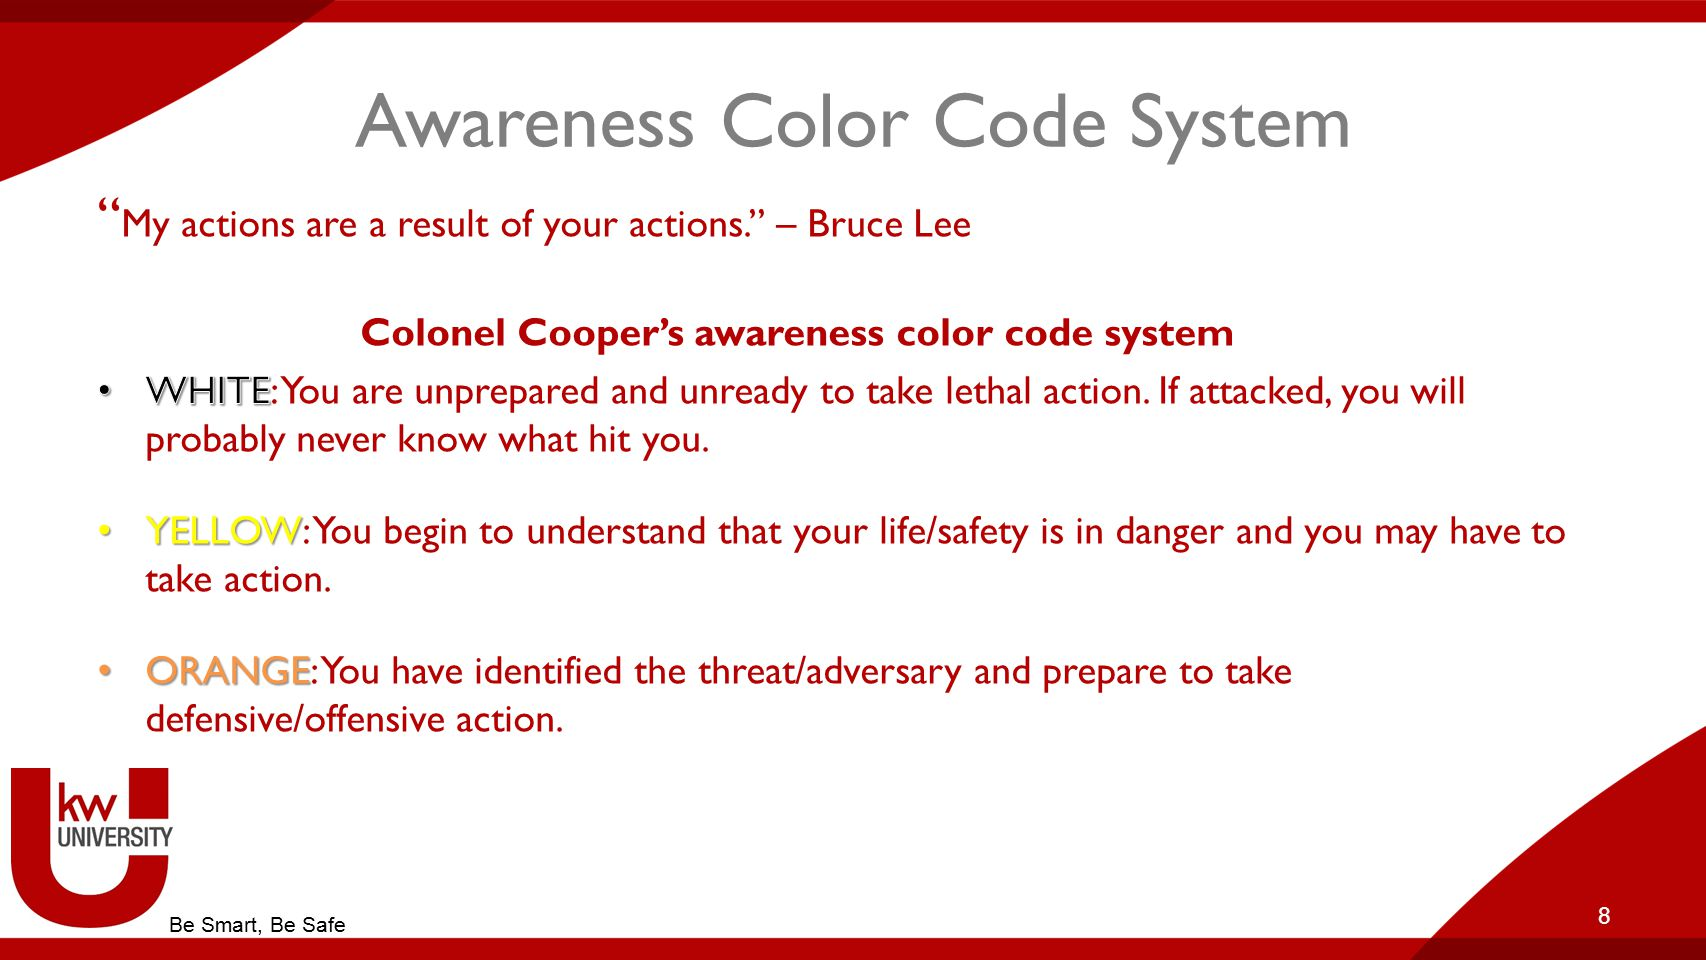 Awareness Color Code System RED: You are in combat mode and will fight/shoot/take any action necessary to survive/win if necessary.